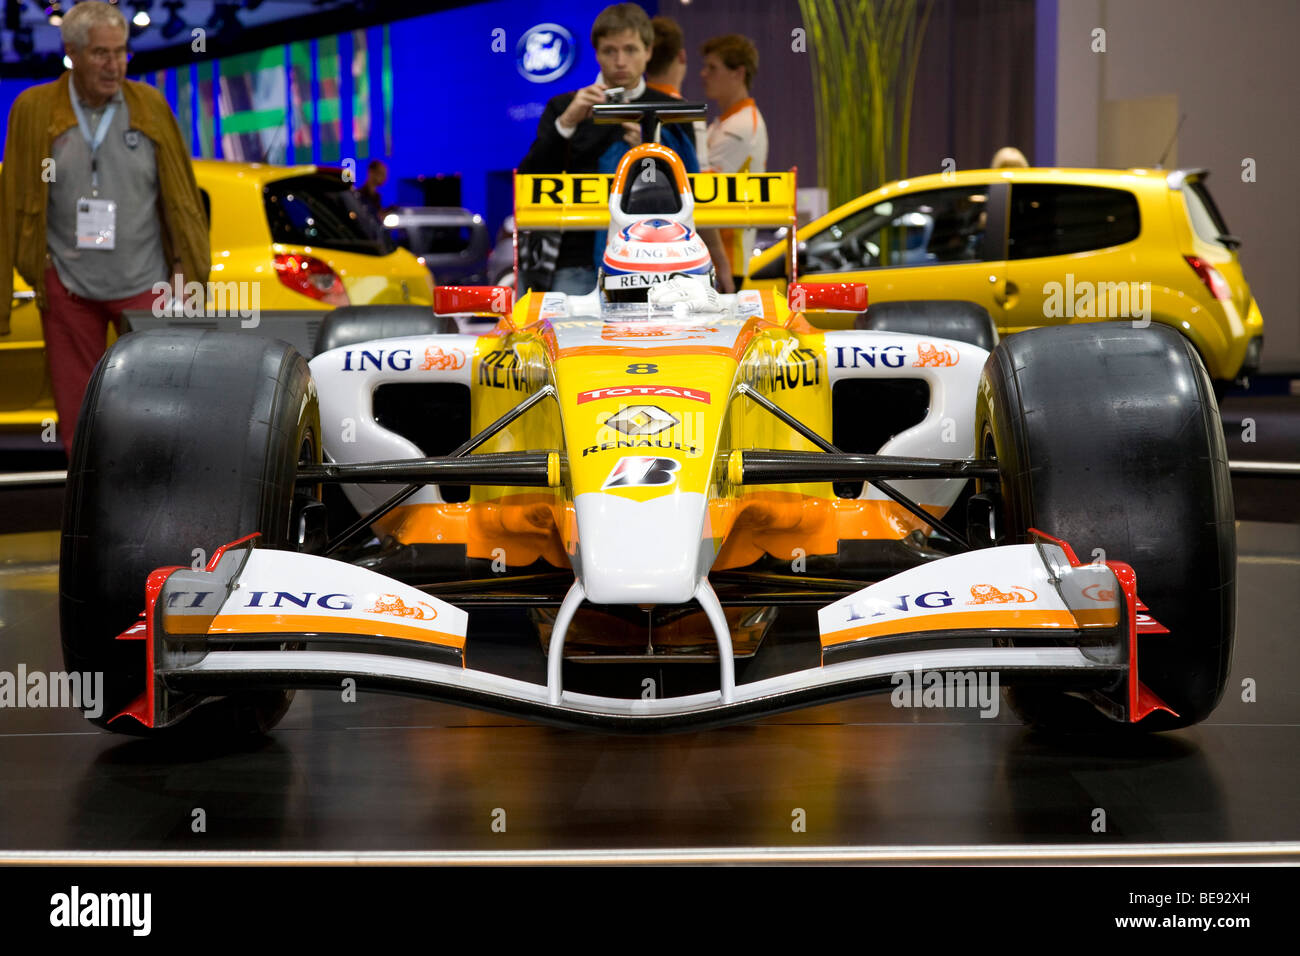 f1 racing stockfotos f1 racing bilder alamy. Black Bedroom Furniture Sets. Home Design Ideas